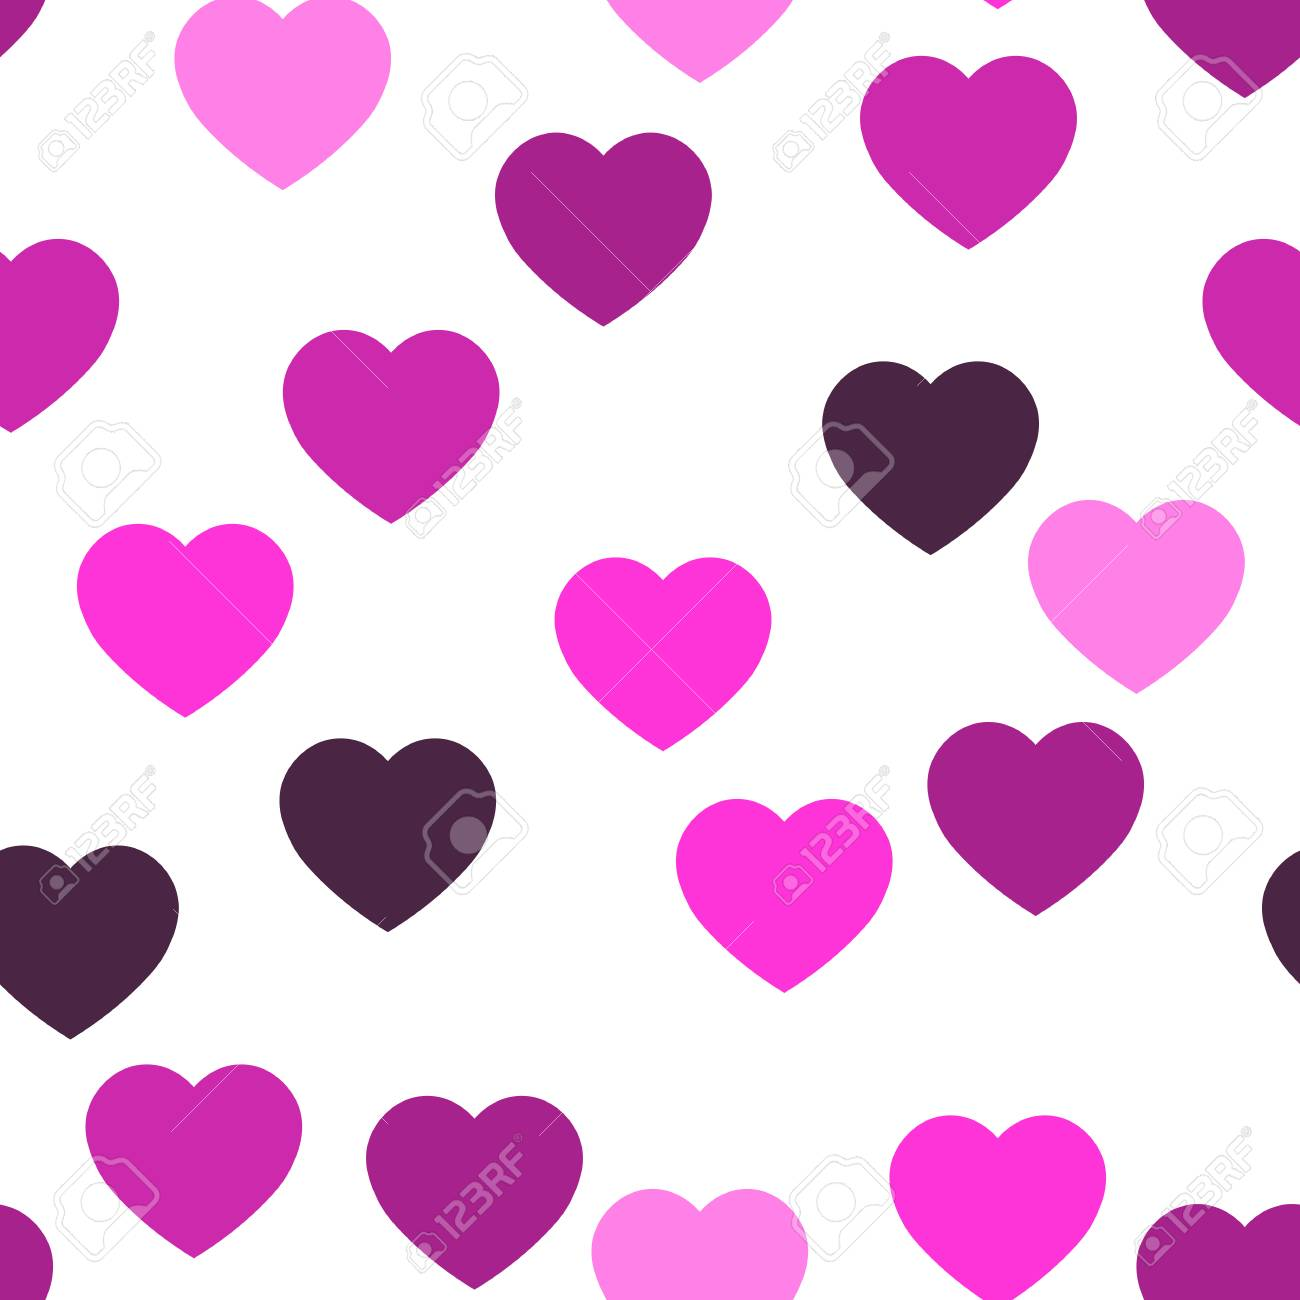 Pink hearts seamless pattern. Random scattered hearts background. Love or Valentine theme. Vector illustration. - 125779539